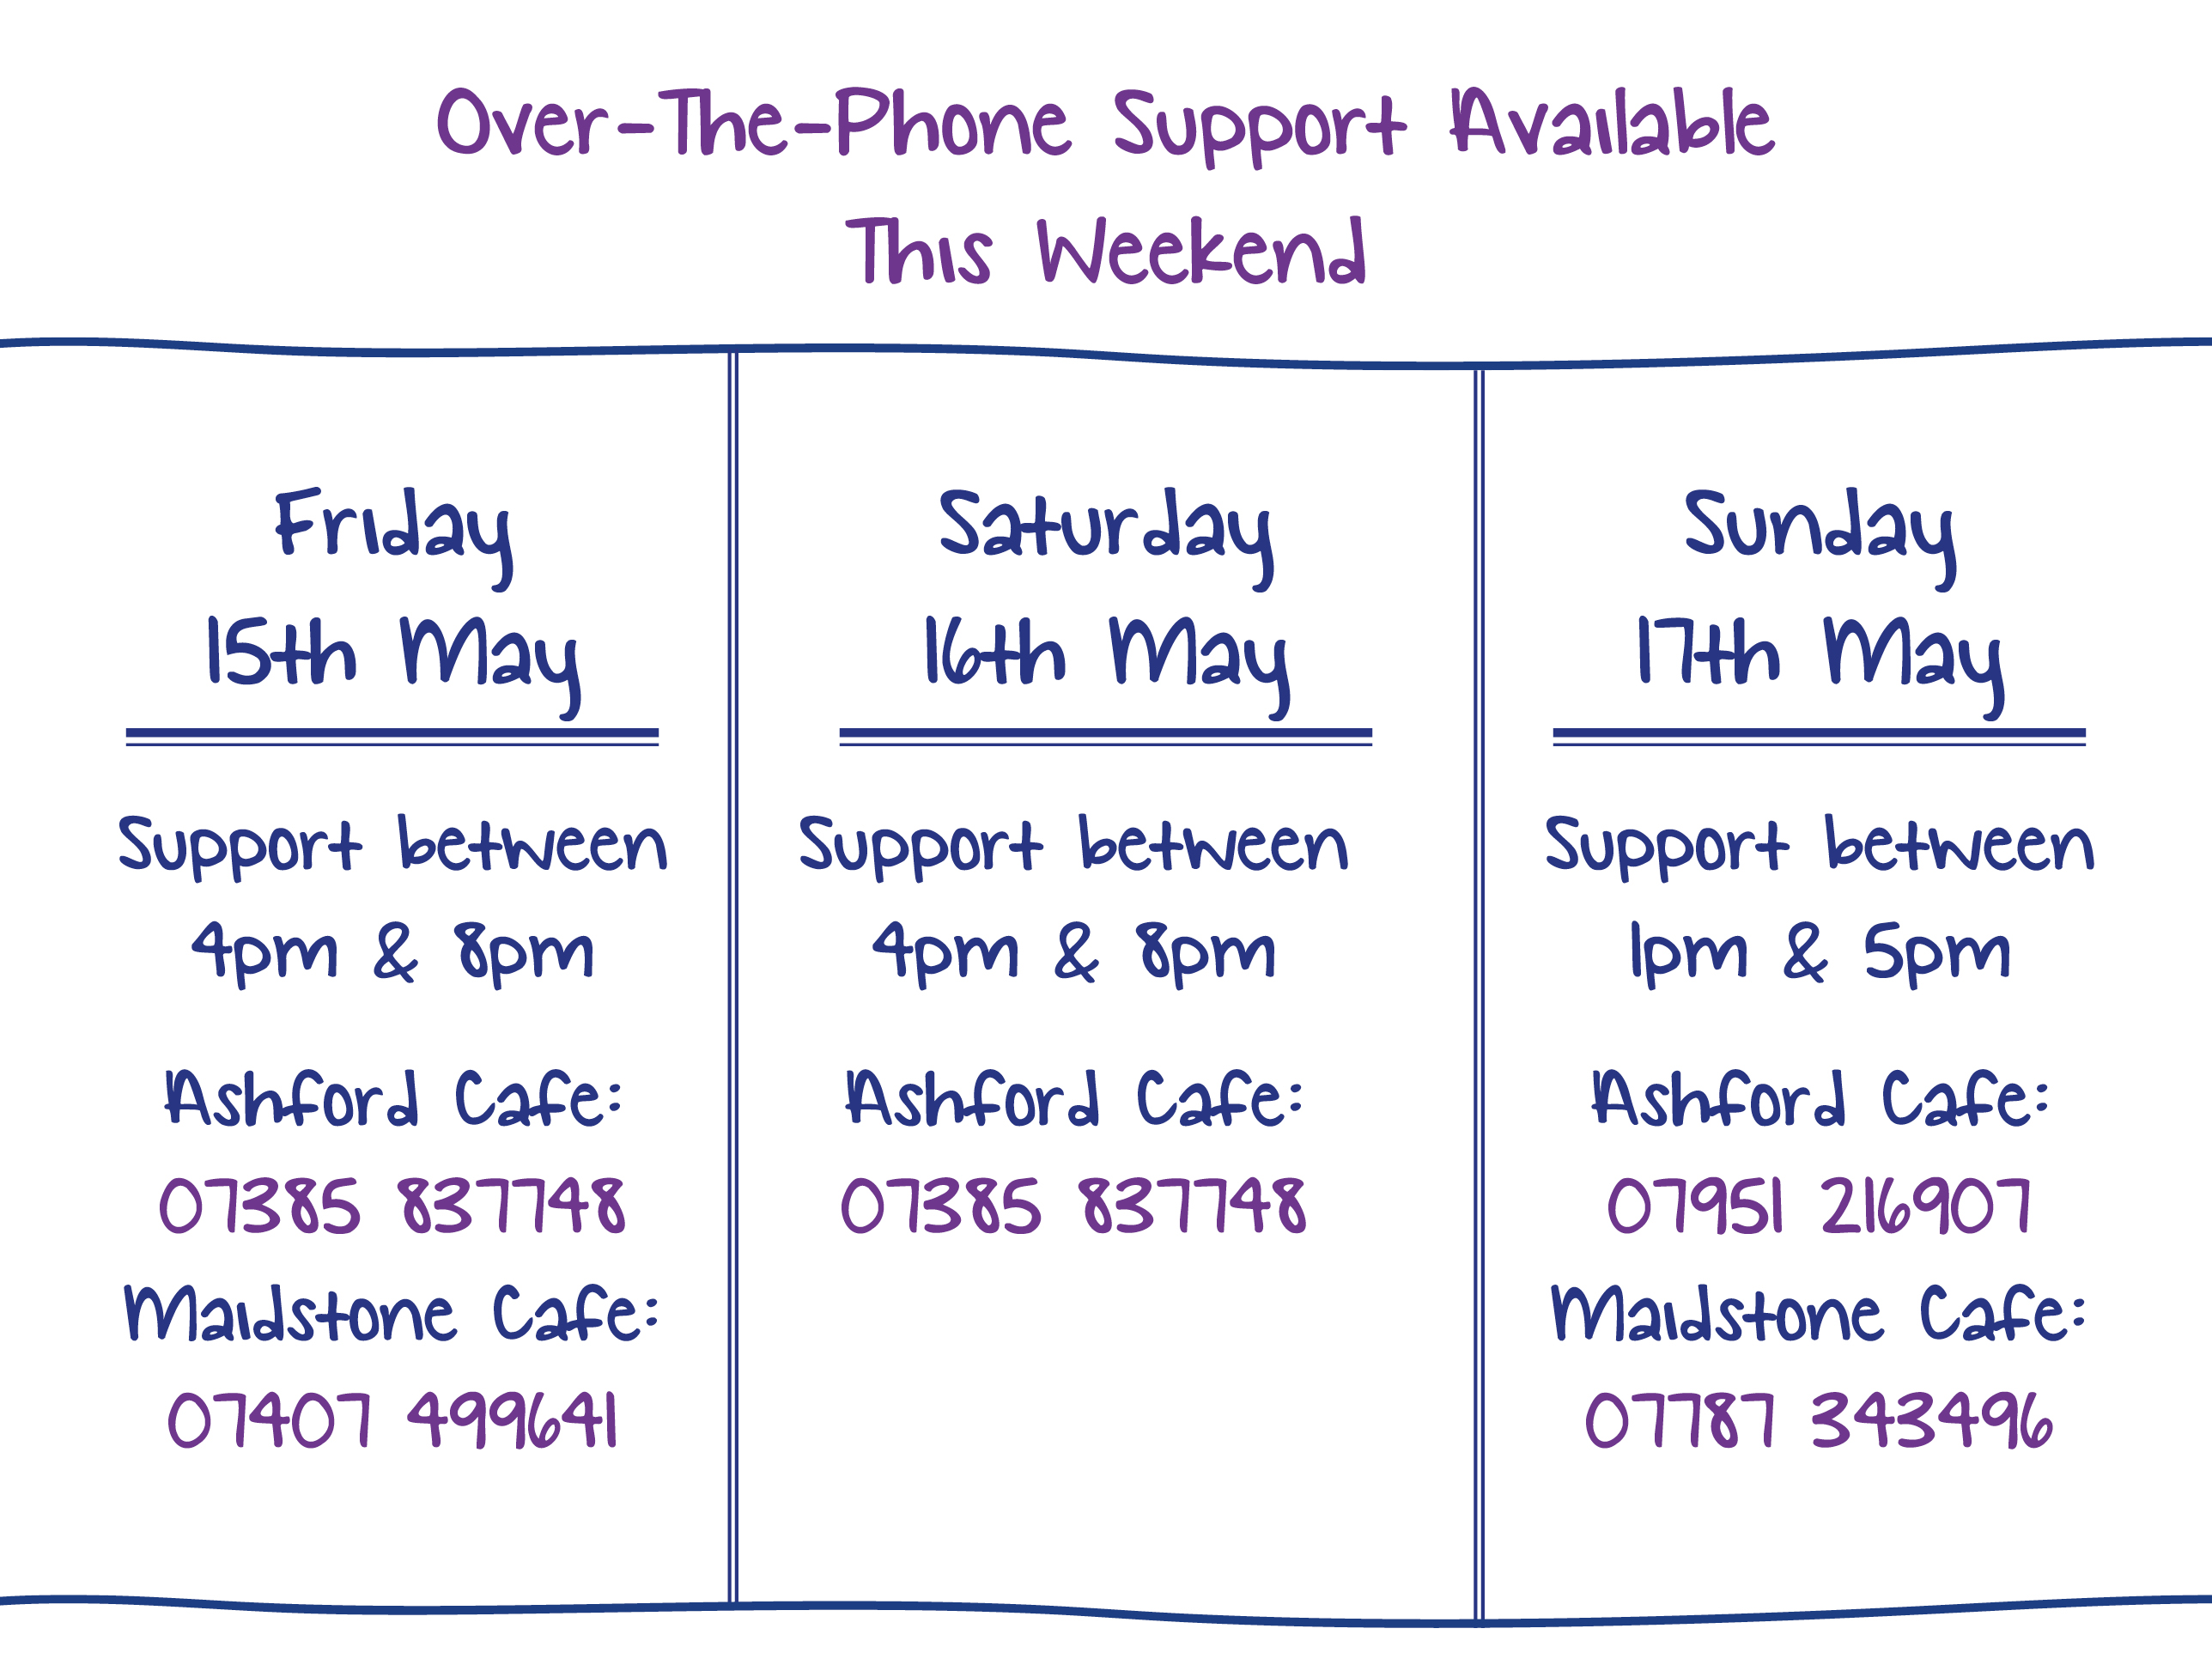 Over-The-Phone Support Available This Weekend. Friday 15th May. Support between 4pm & 8pm Ashford Cafe: 07385 837748 Maidstone Cafe: 07407 499641. Saturday 16th May. Support between 4pm & 8pm Ashford Cafe: 07385 837748. Sunday 17th May. Support between 1pm & 5pm Ashford Cafe: 07951 216907 Maidstone Cafe: 07787 343496